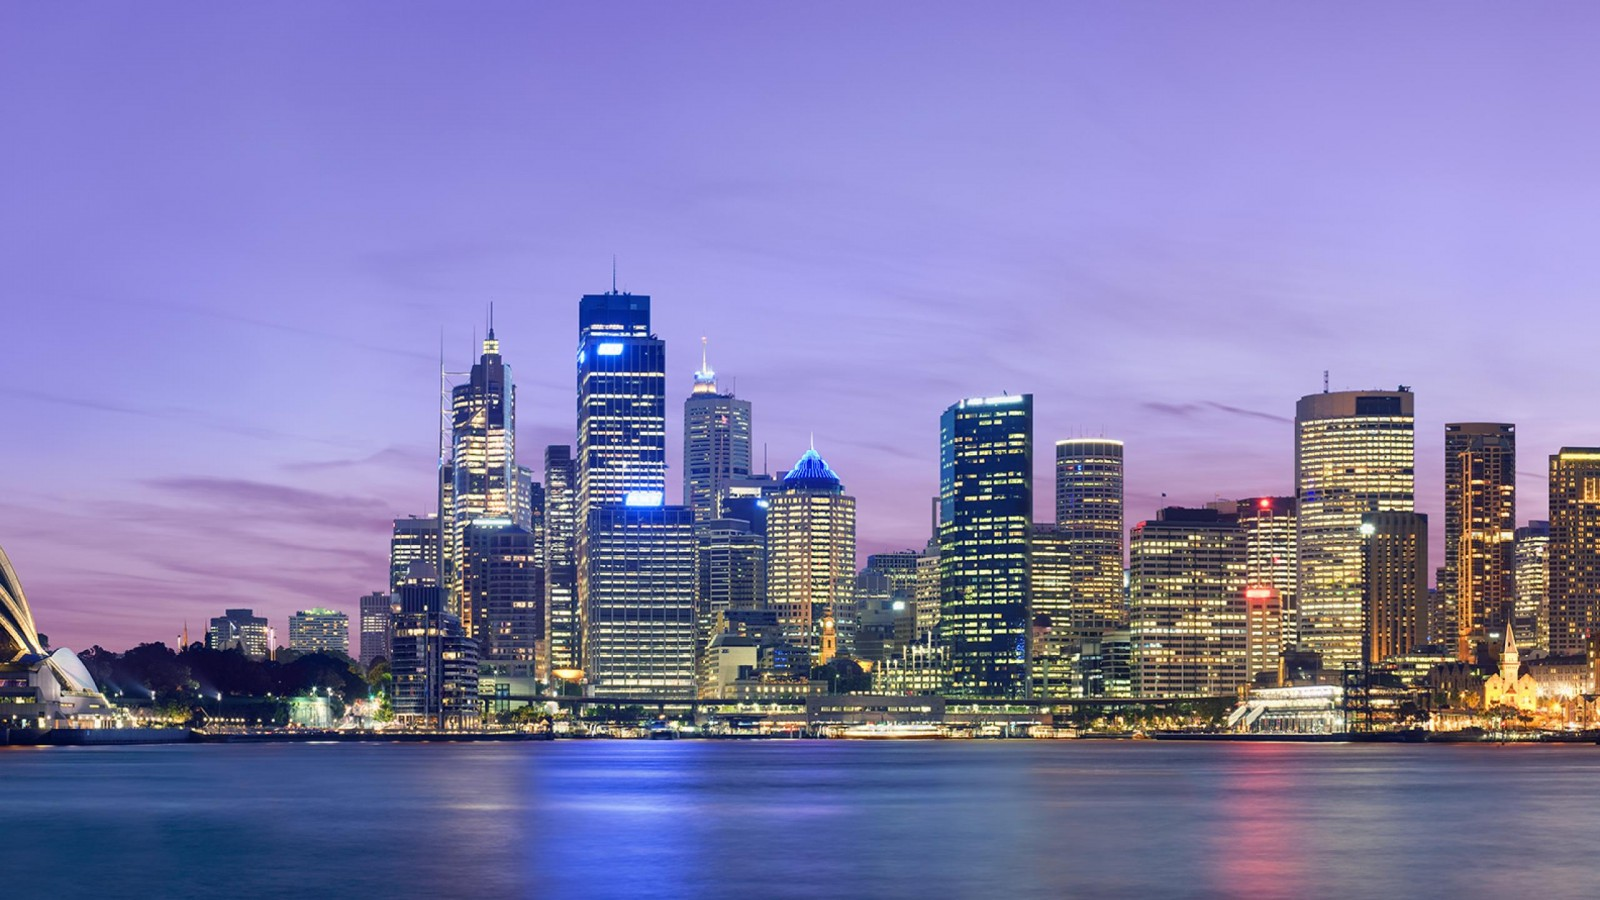 sydney skyline dusk australia    on line HD Wallpaper